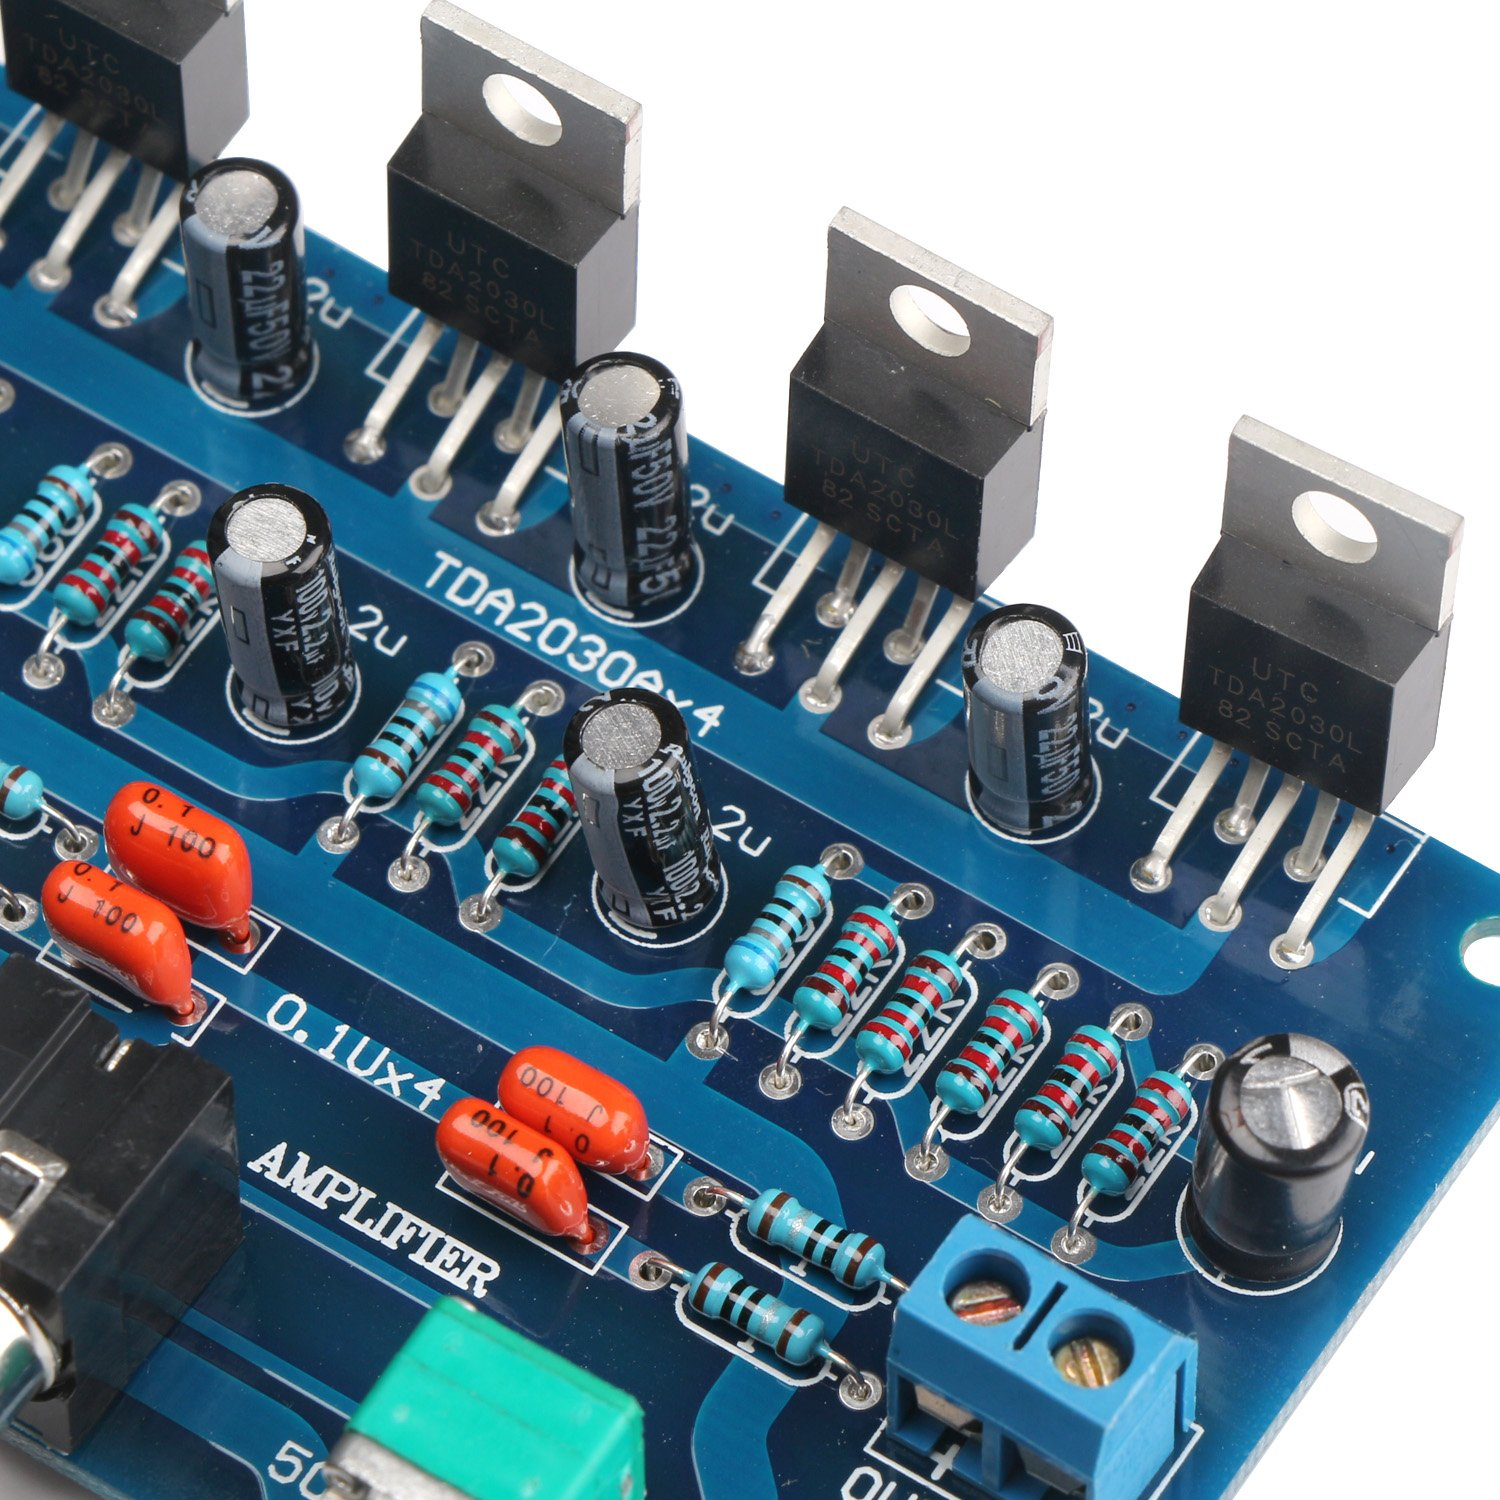 Drok Tda2030a Digital Stereo Audio Power Amplifier 34w34w Pcb For Board Circuit Quotes